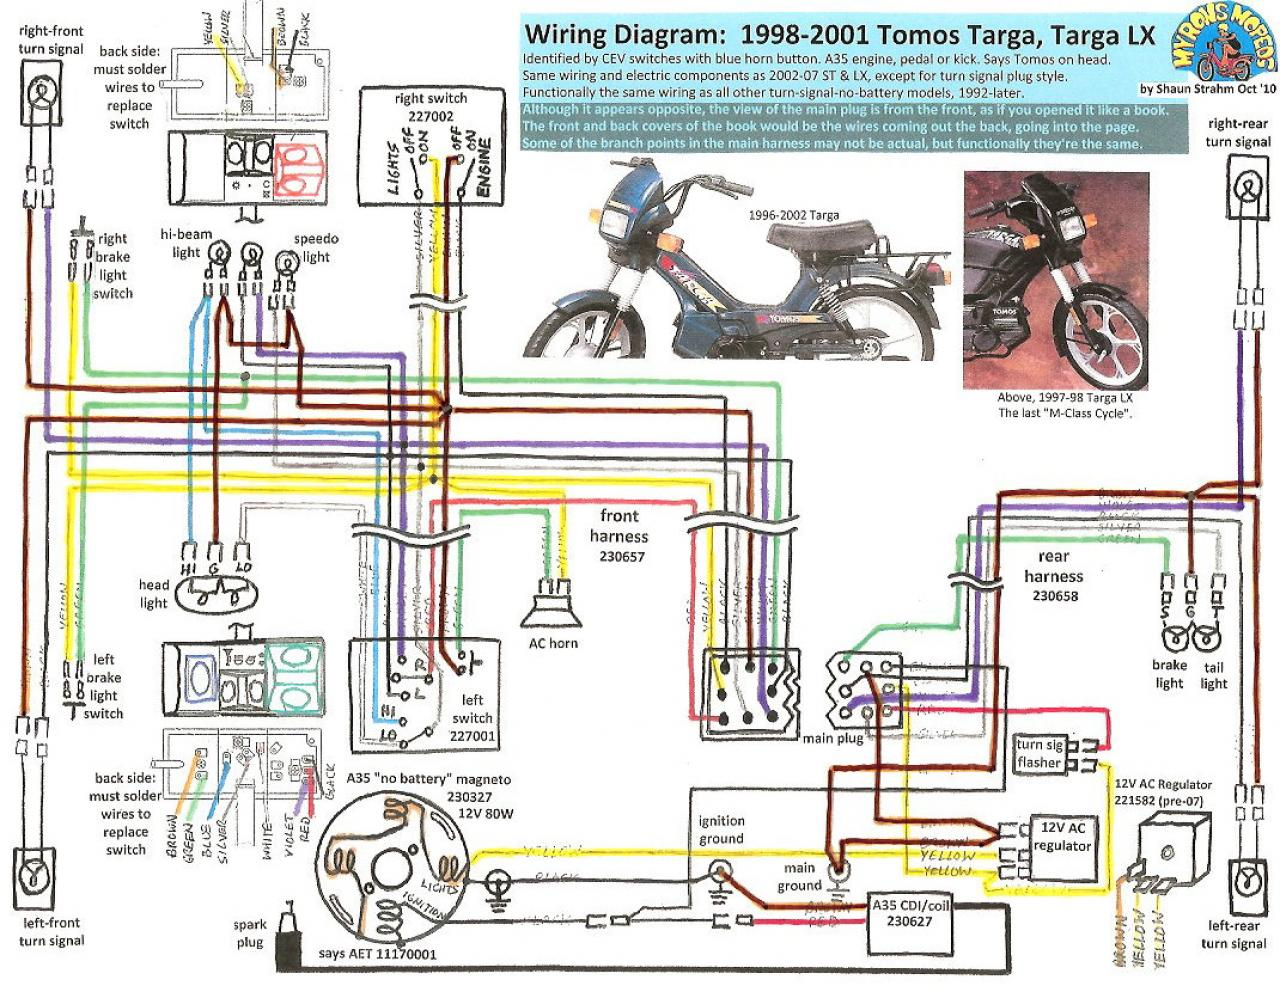 2008 tomos youngstr 50 moto zombdrive com tomos a55 wiring diagram tomos a55 wiring diagram tomos a55 wiring diagram tomos a55 wiring diagram